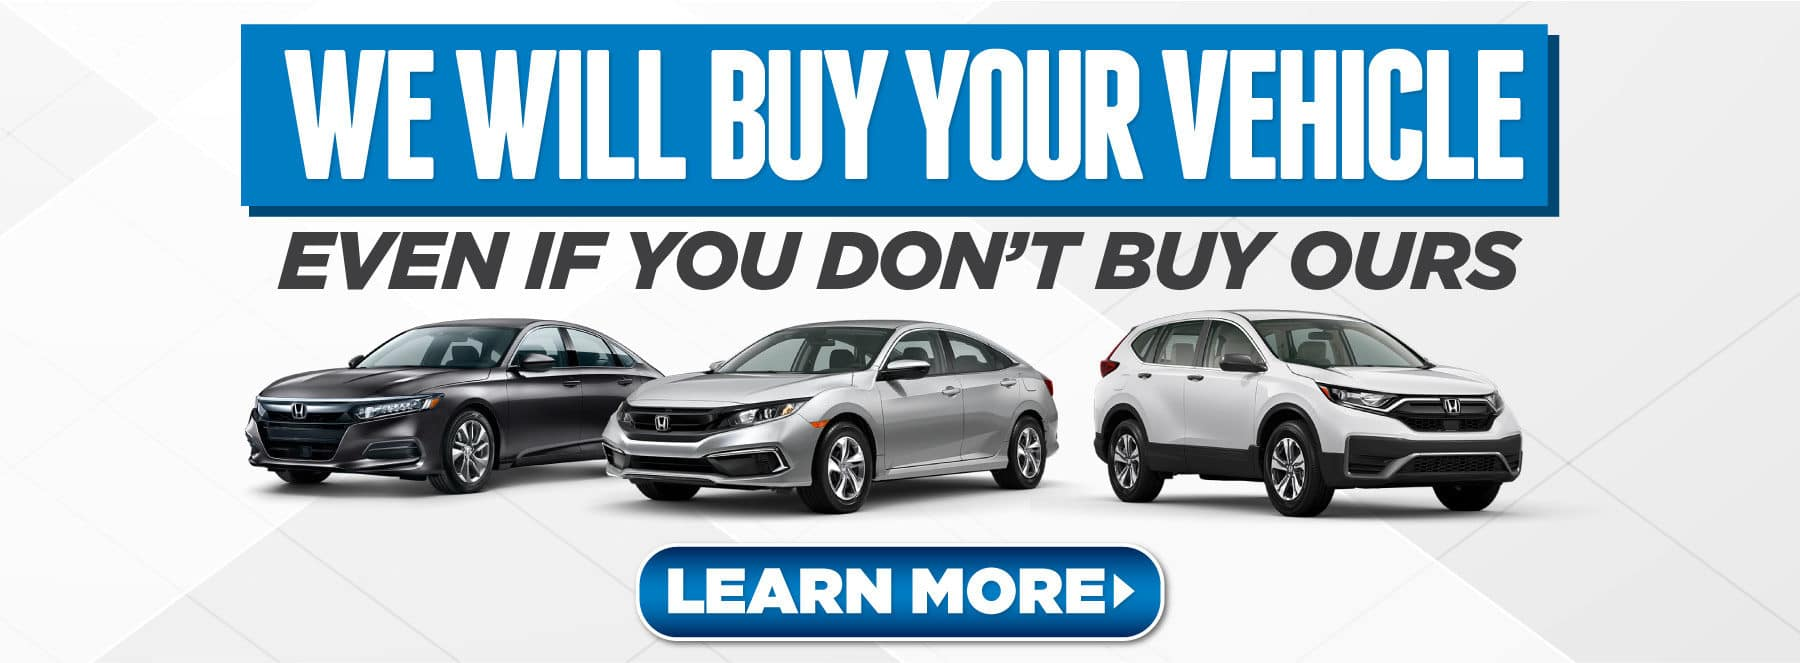 We will buy your vehicle even if you don't buy ours - Learn More